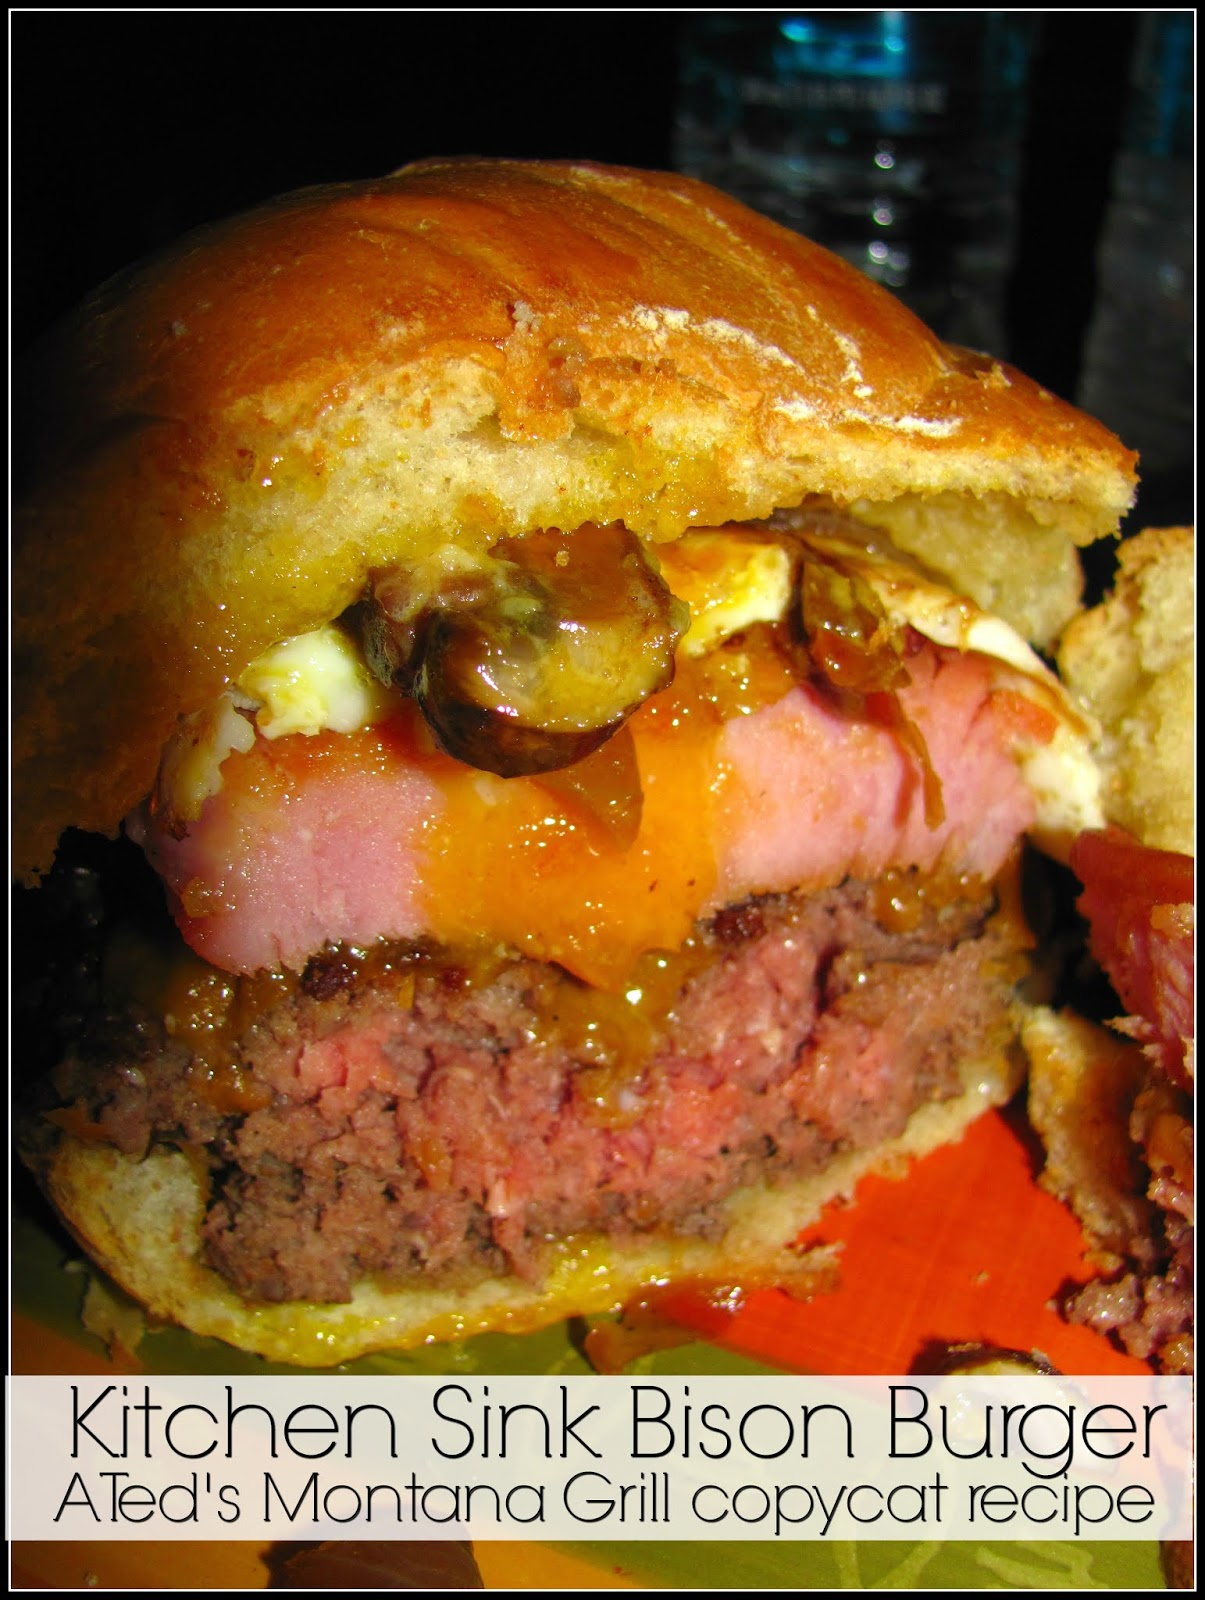 For the Love of Food: Ted\'s Montana Grill Kitchen Sink Bison Burger